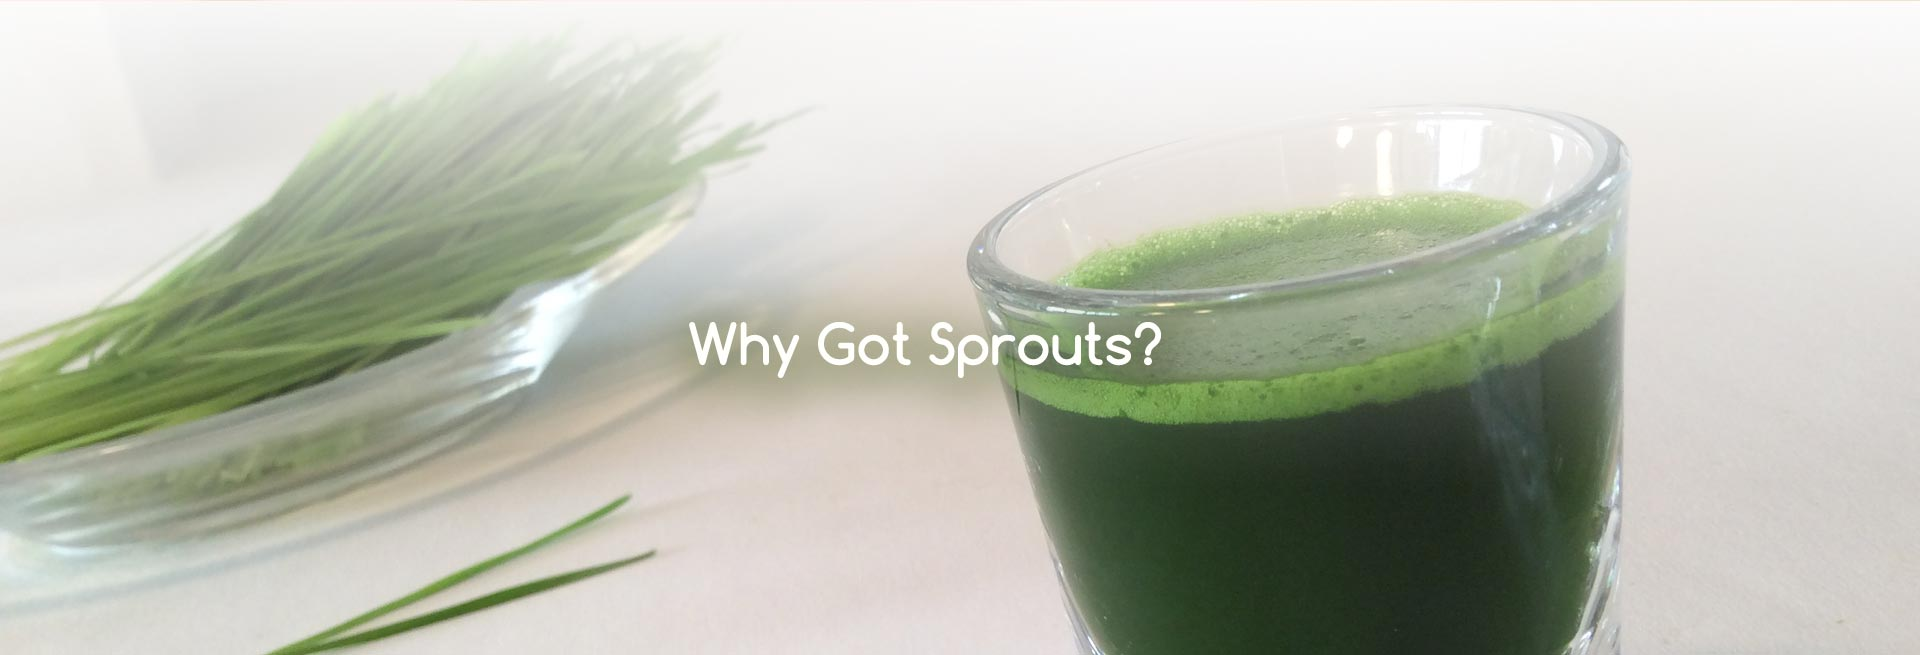 Got Sprouts Organic Wheatgrass and Sprouting